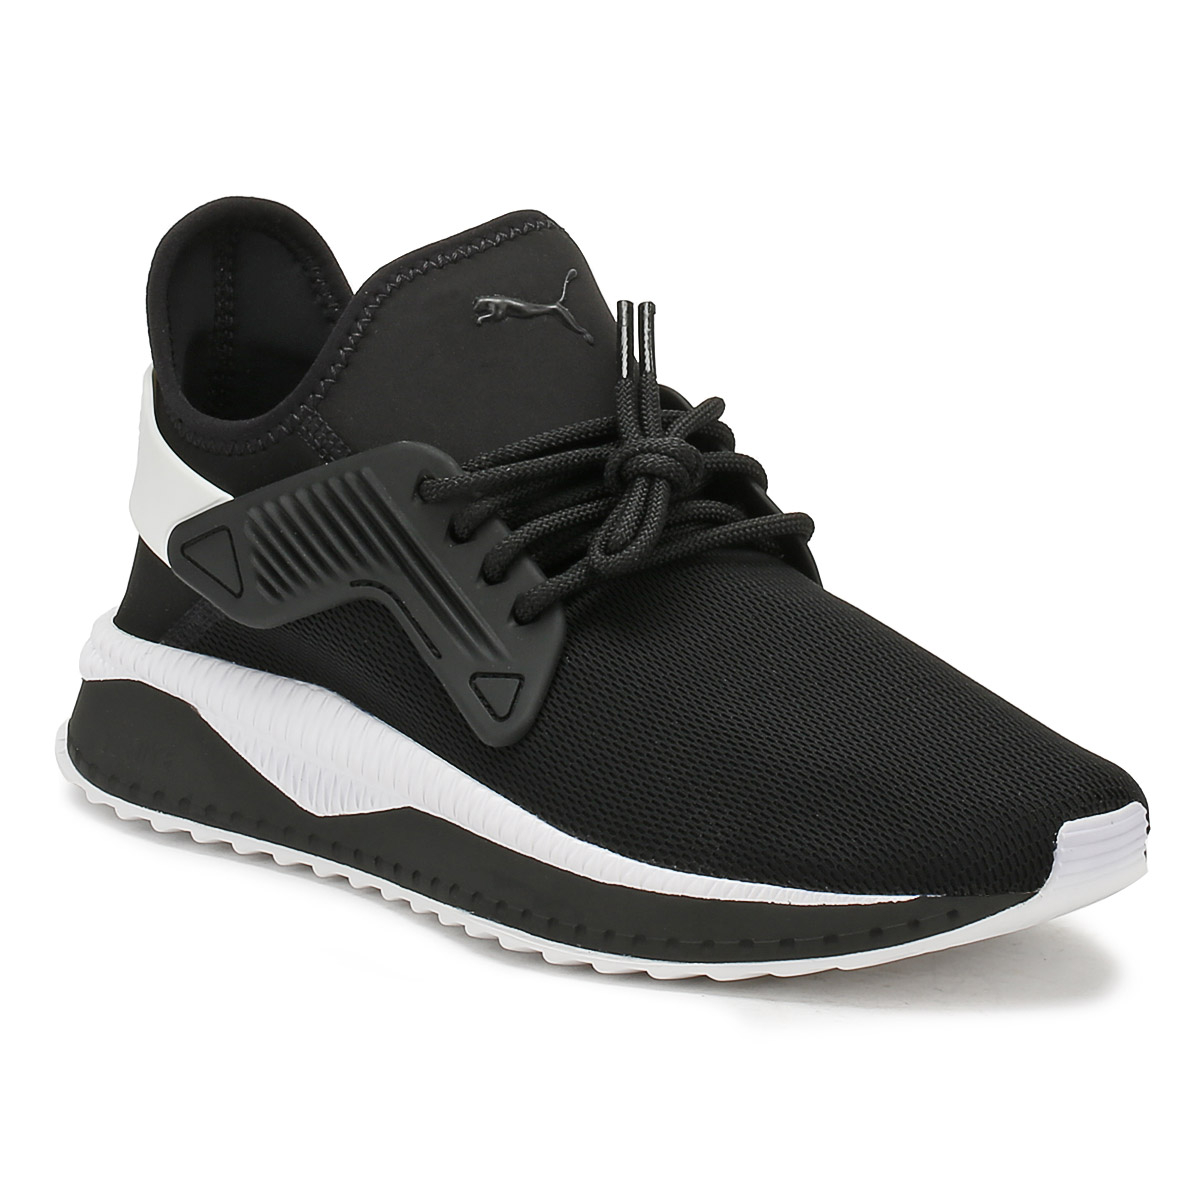 PUMA homme noir Up Tsugi Cage Trainers Lace Up noir Sport Casual chaussures f23fbb